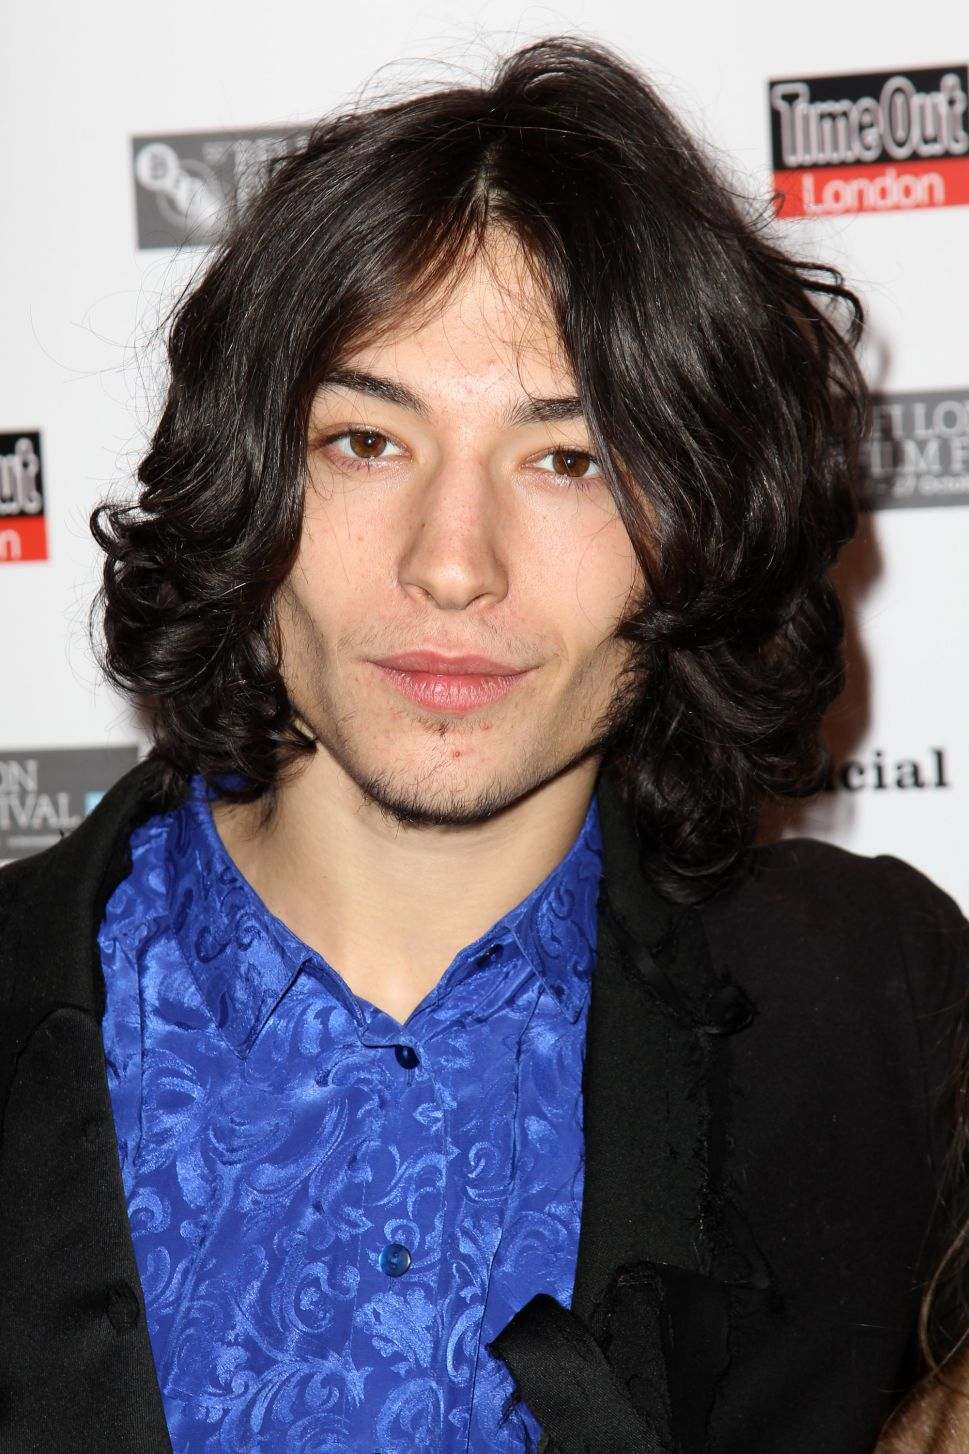 Ezra Miller Talks We Need to Talk About Kevin